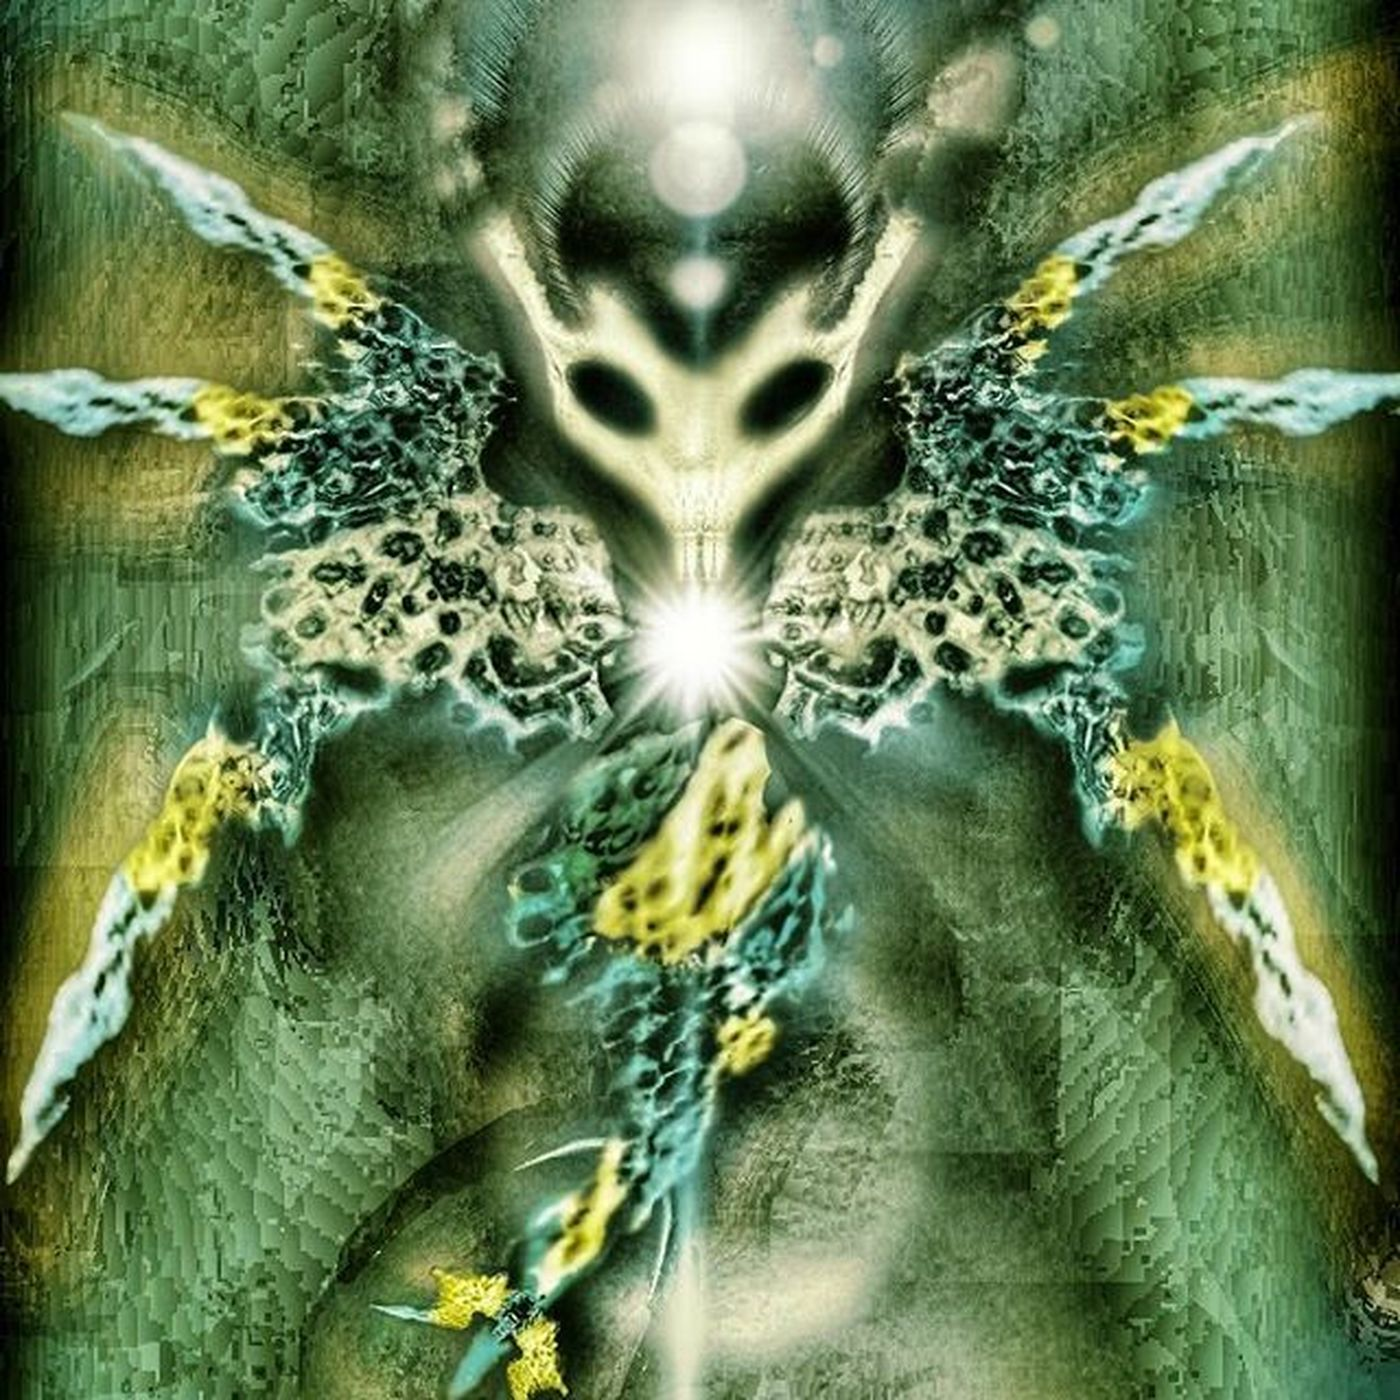 And also Earth CreatureCreation Mobileart Art Picsart